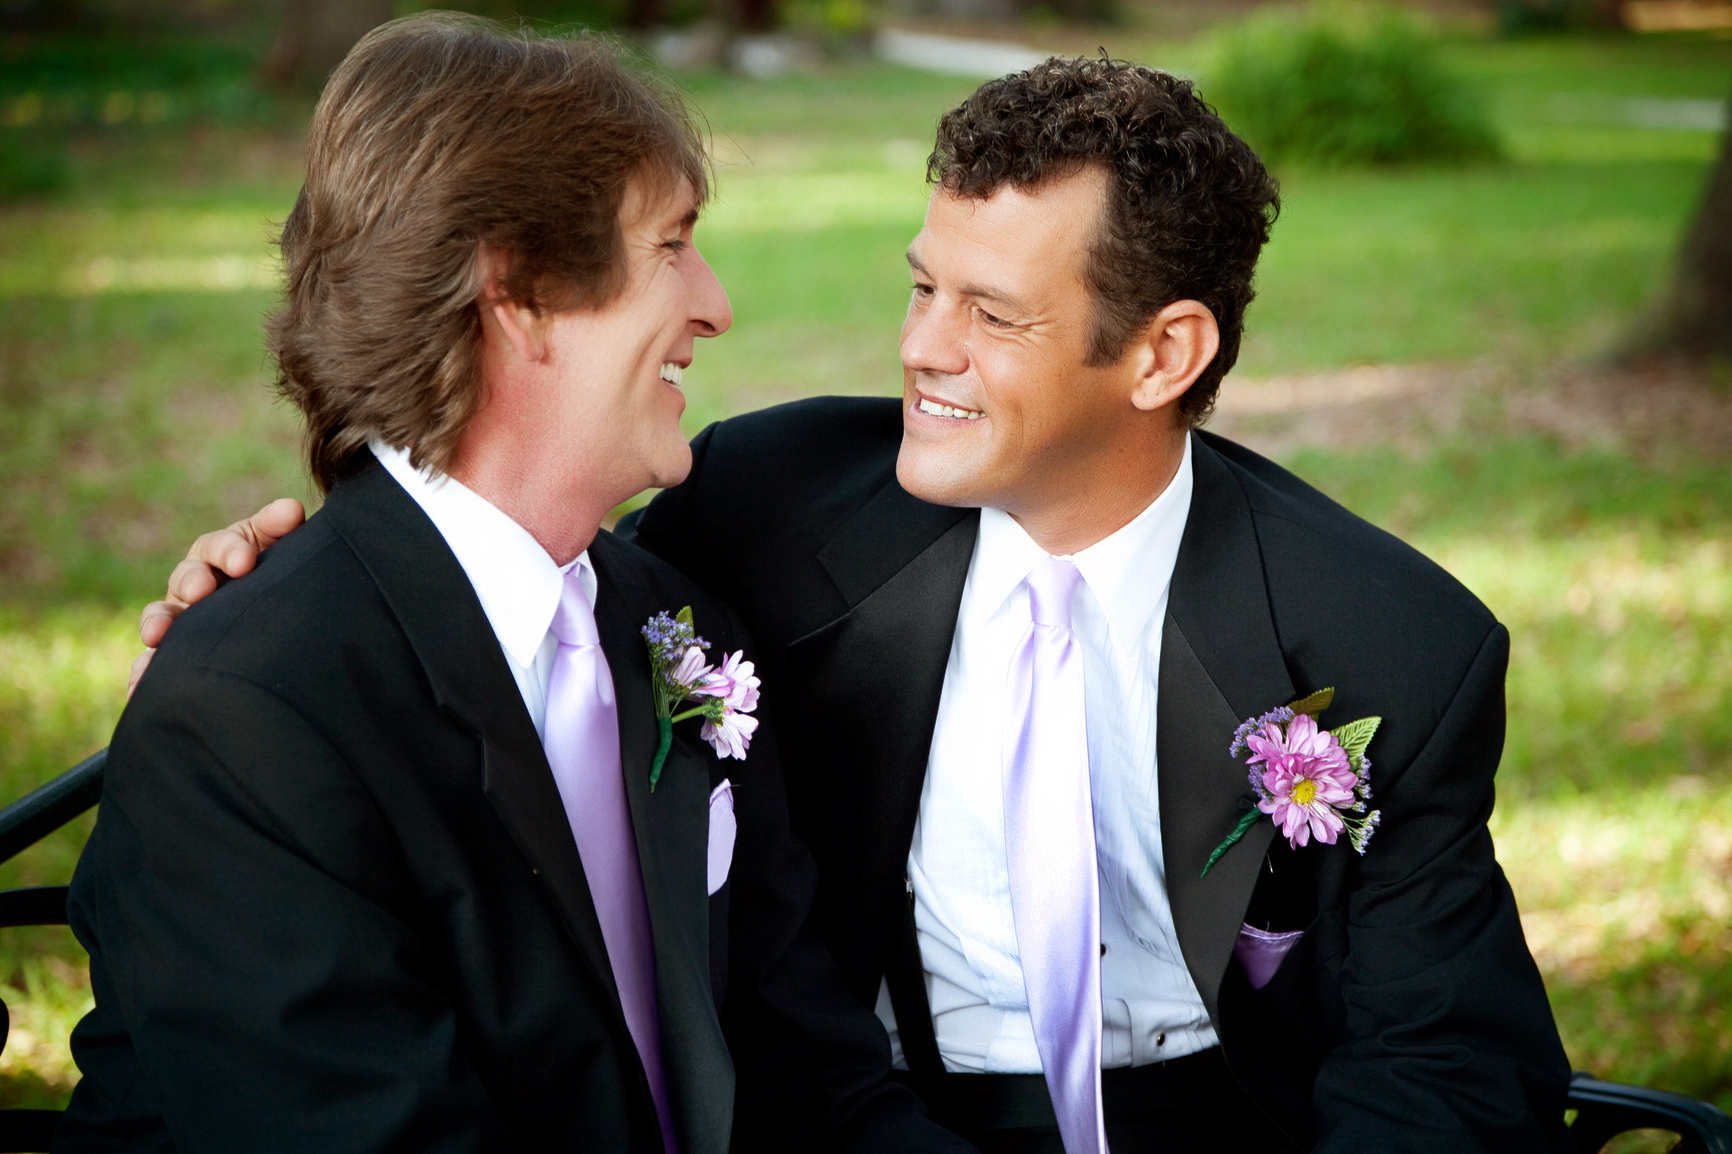 wedding-ceremony-lgbt-two-gay-grooms-on-wedding-day-m.jpg